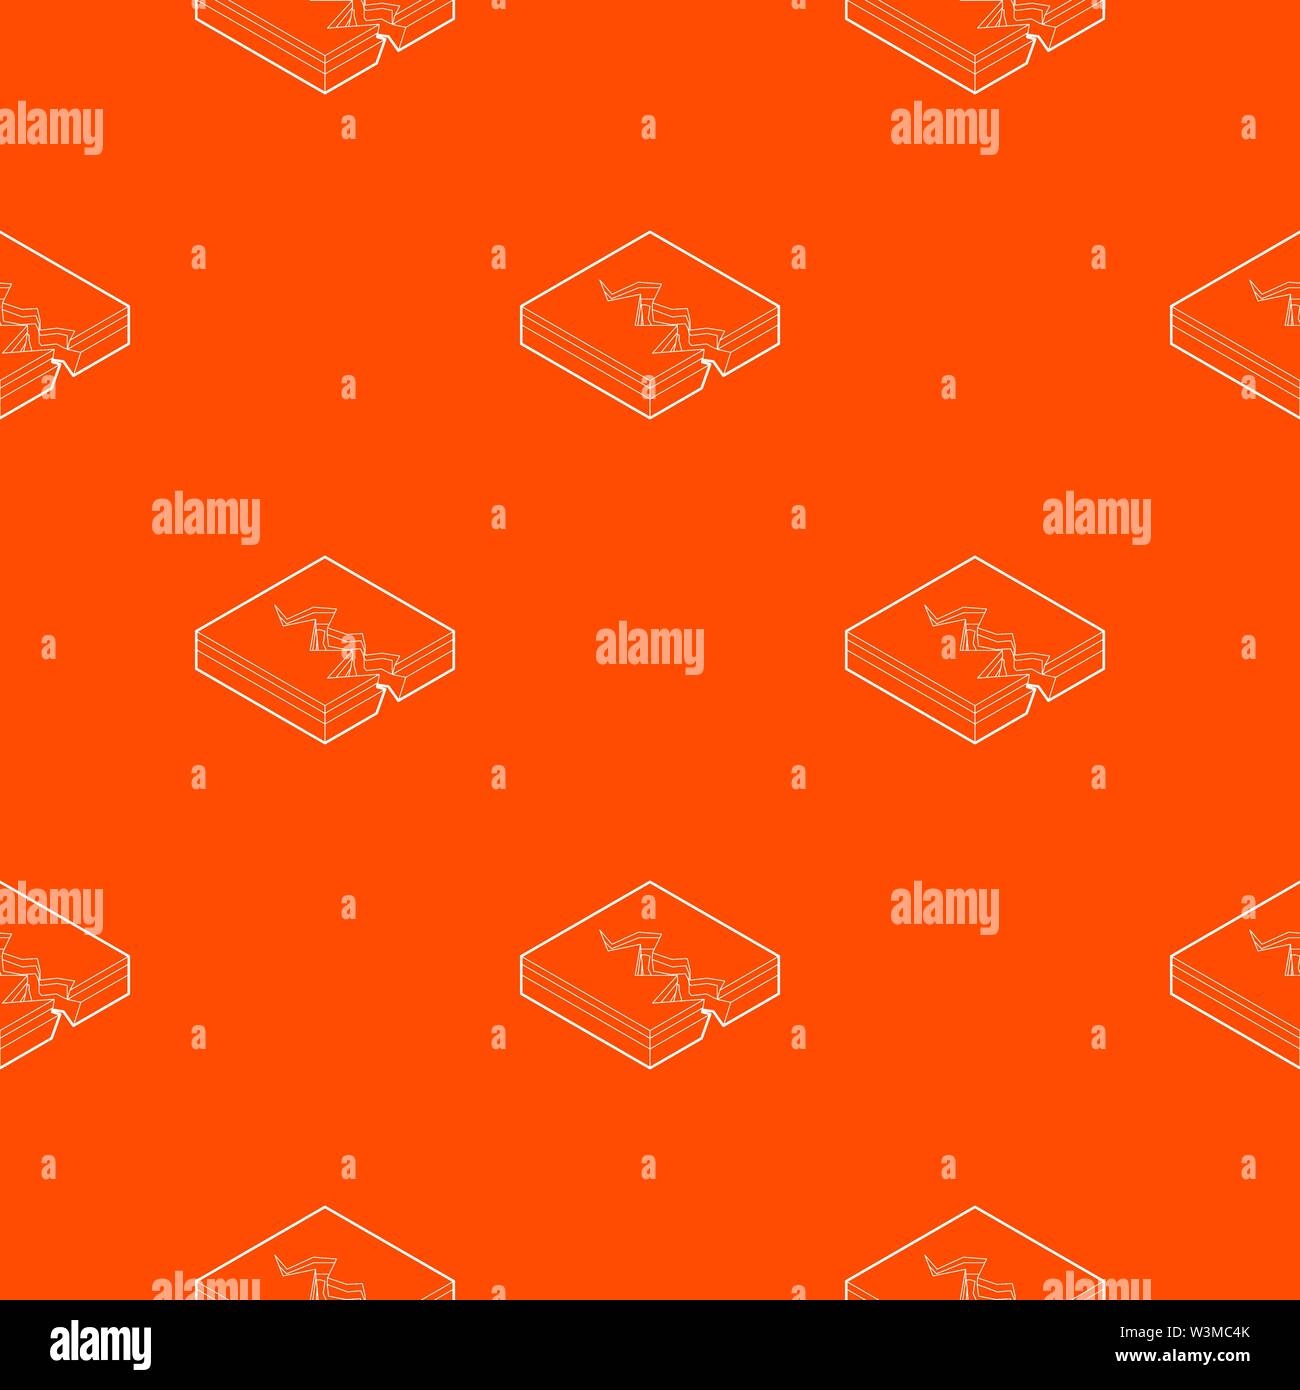 Earth crack pattern vector orange - Stock Image